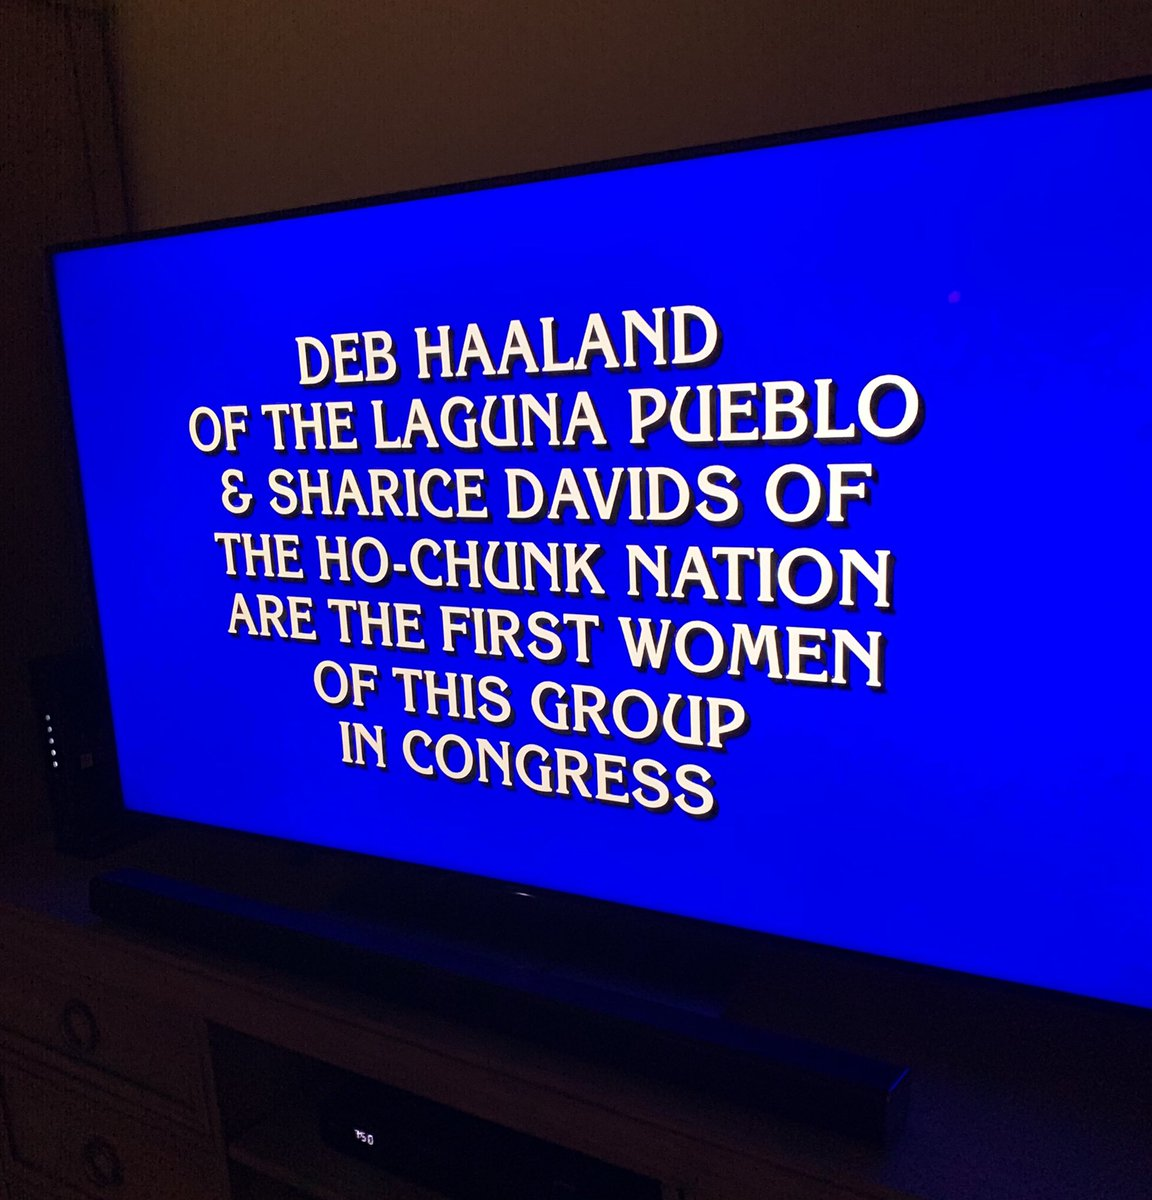 What is....Native and proud 💪🏾👊🏾 Thanks for the shout out, @Jeopardy!